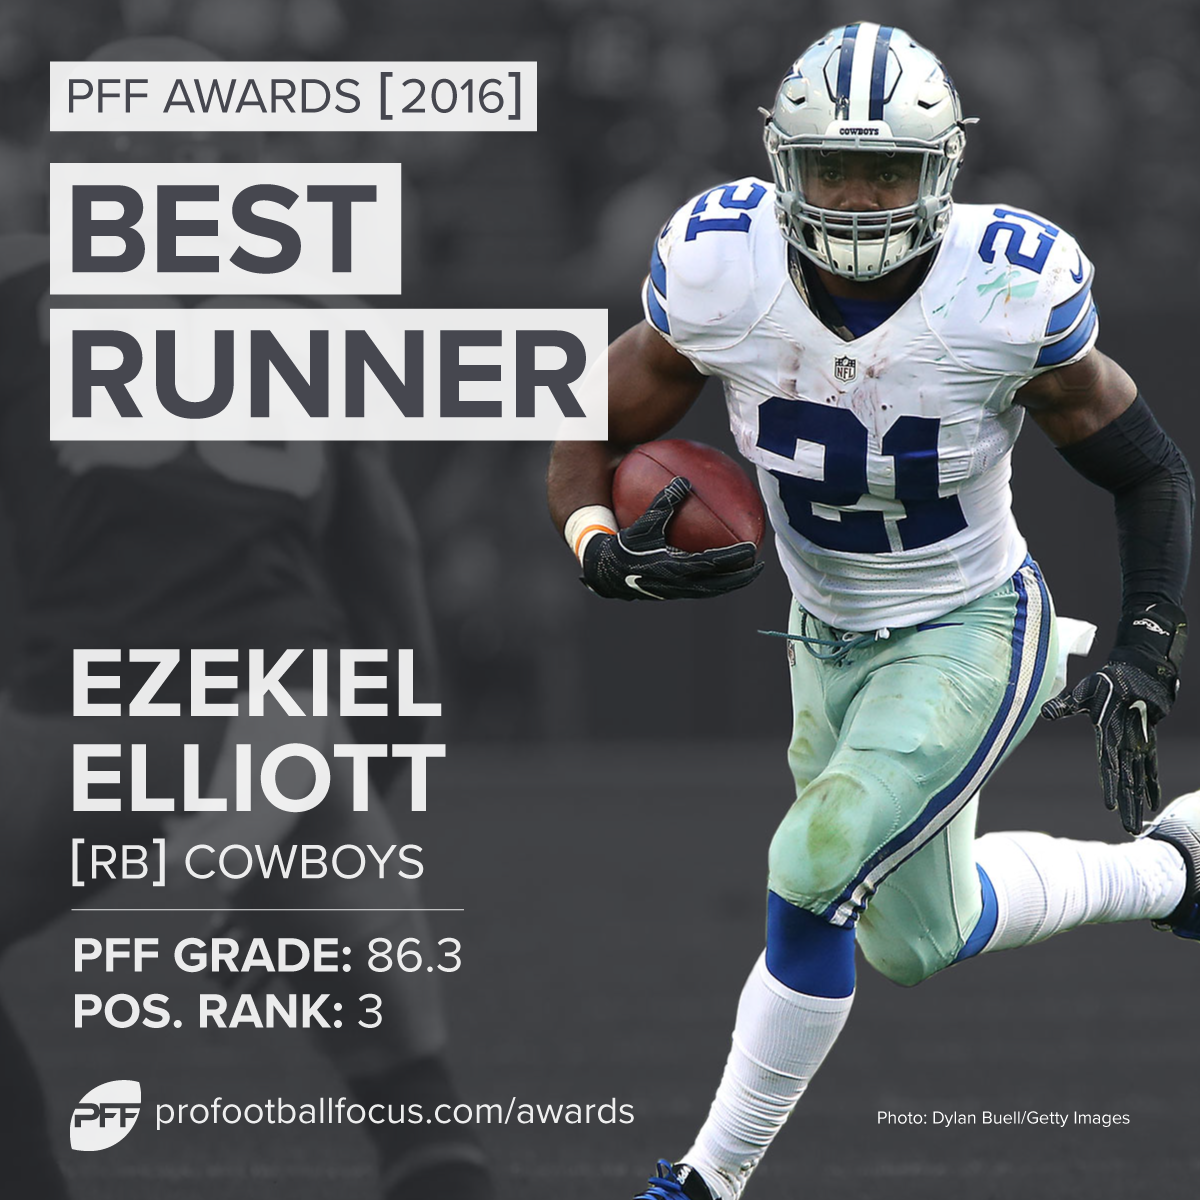 PFF 2016 Best Runner: Ezekiel Elliott